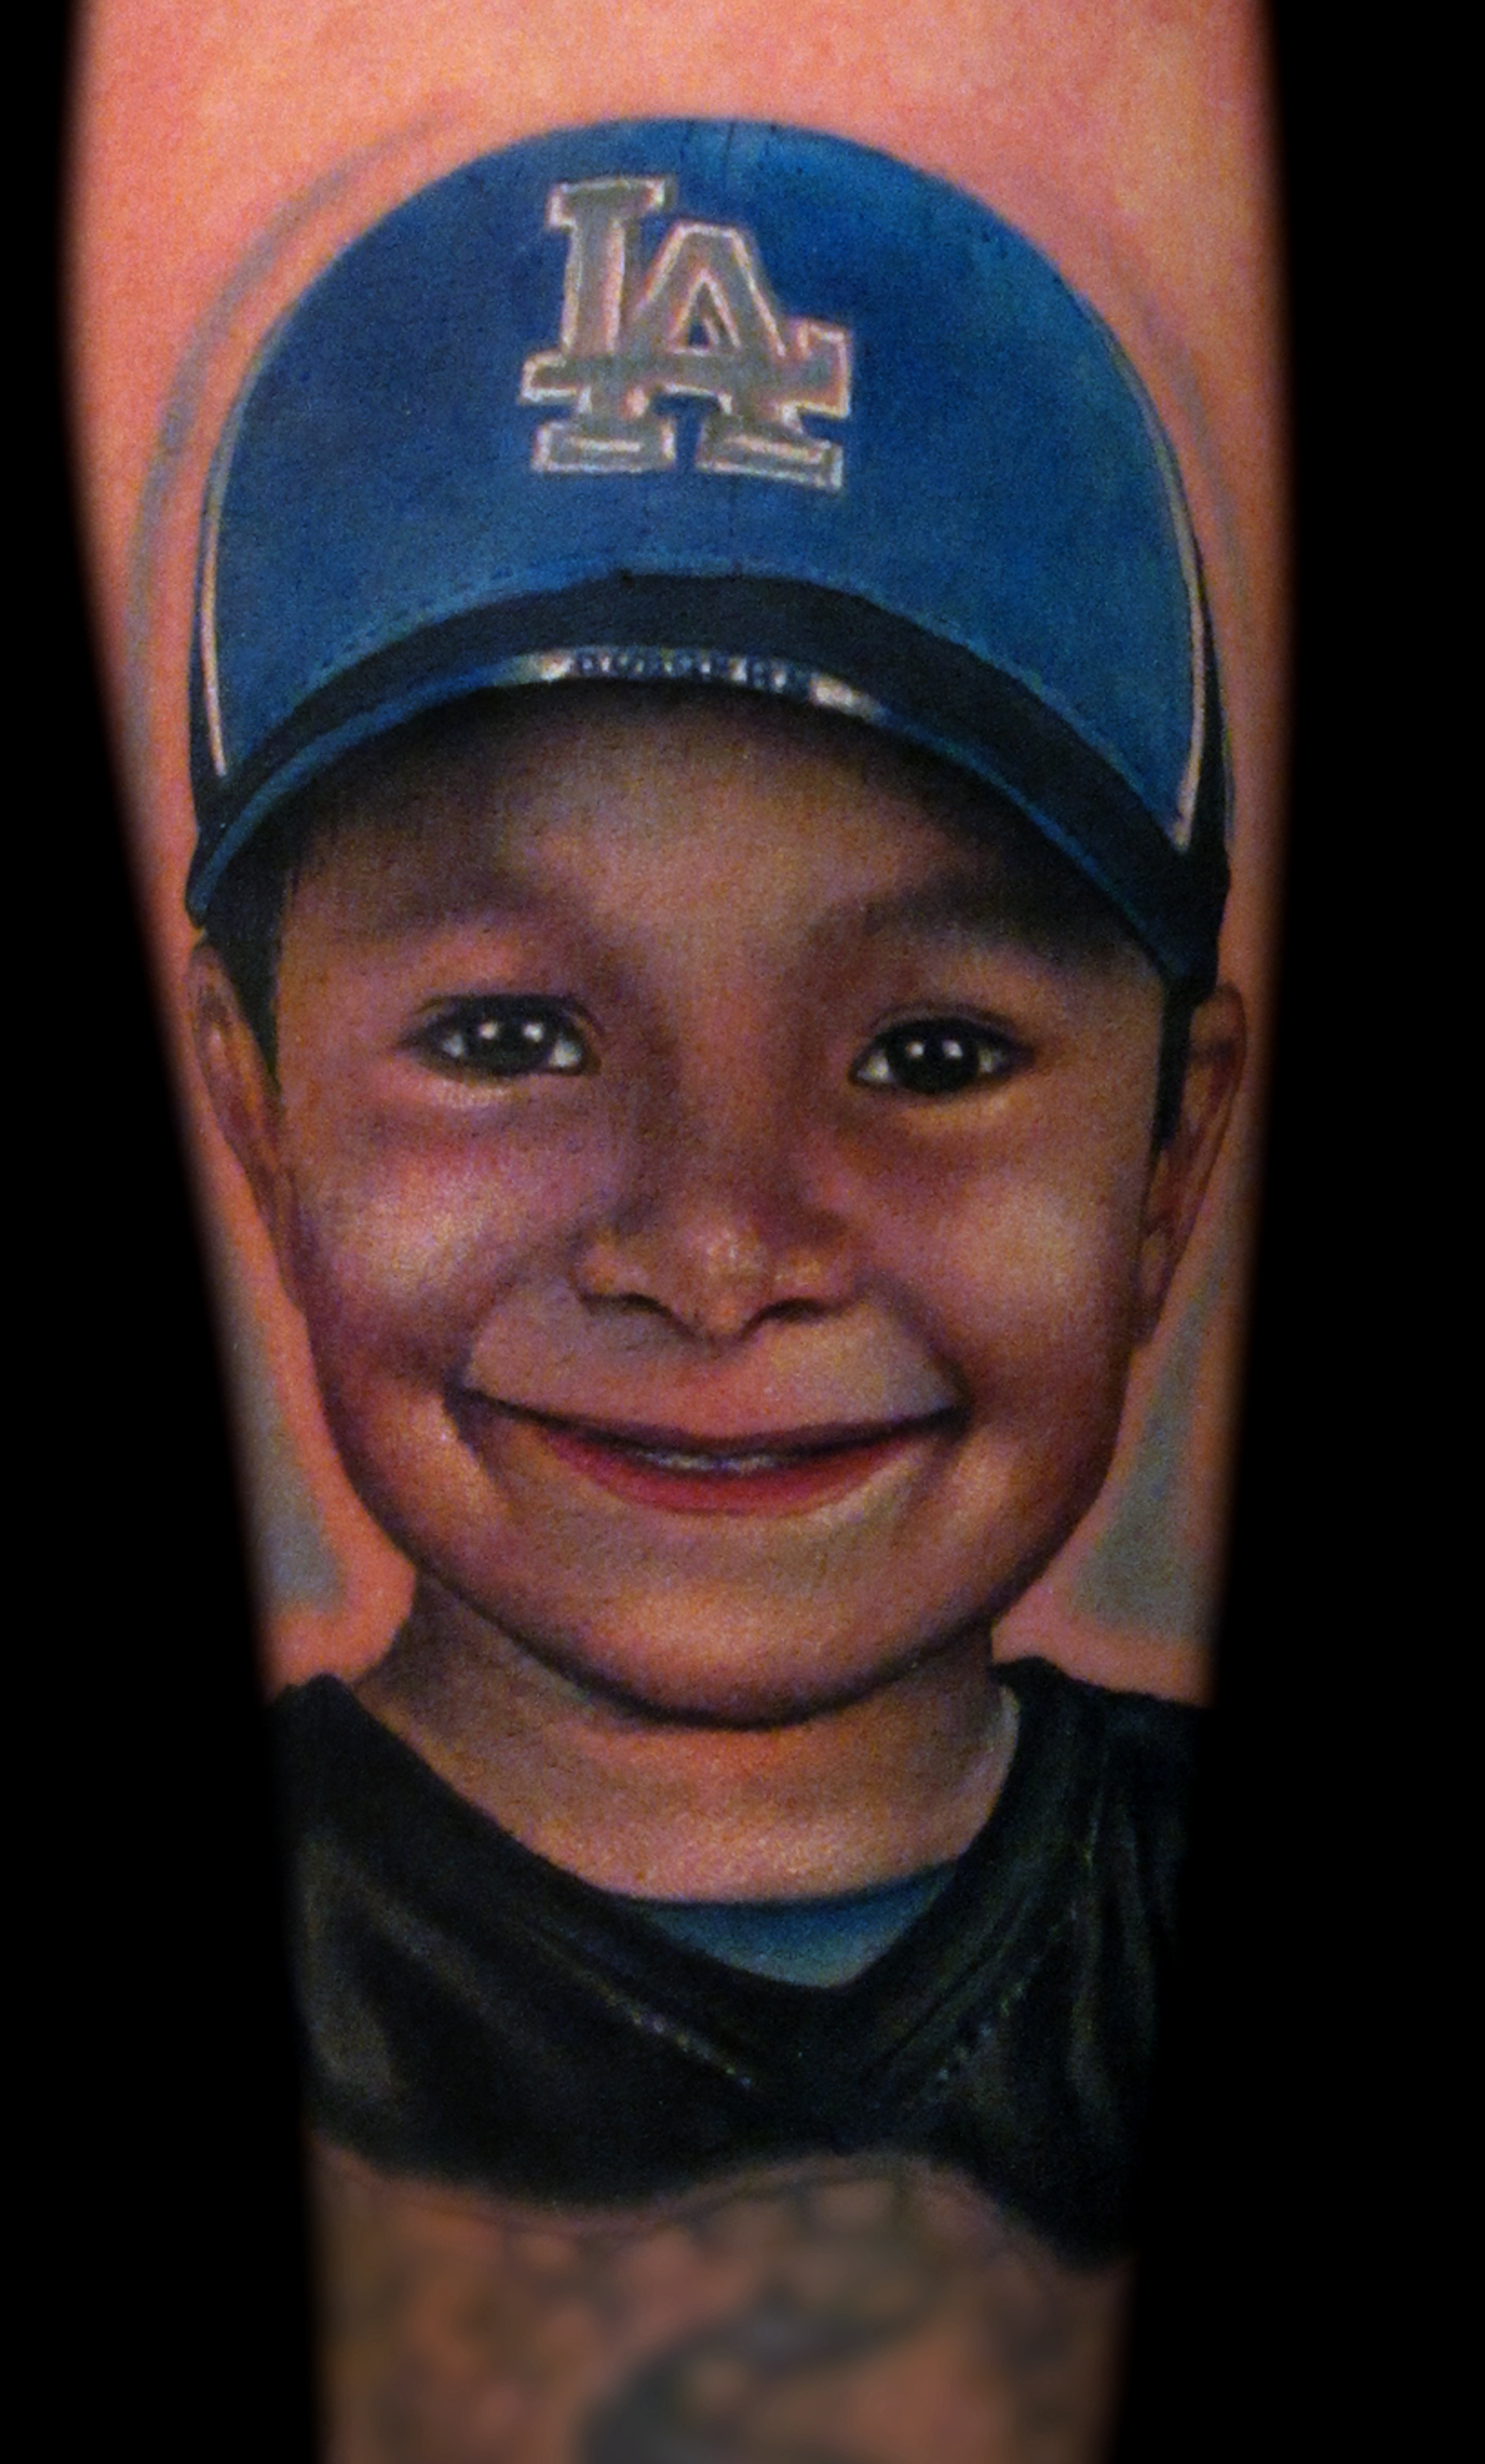 Mag-Tattoo Portrait Realistic Color Dodger Hat Boy Artist Liz Cook Rebel Muse Dallas Texas.jpg